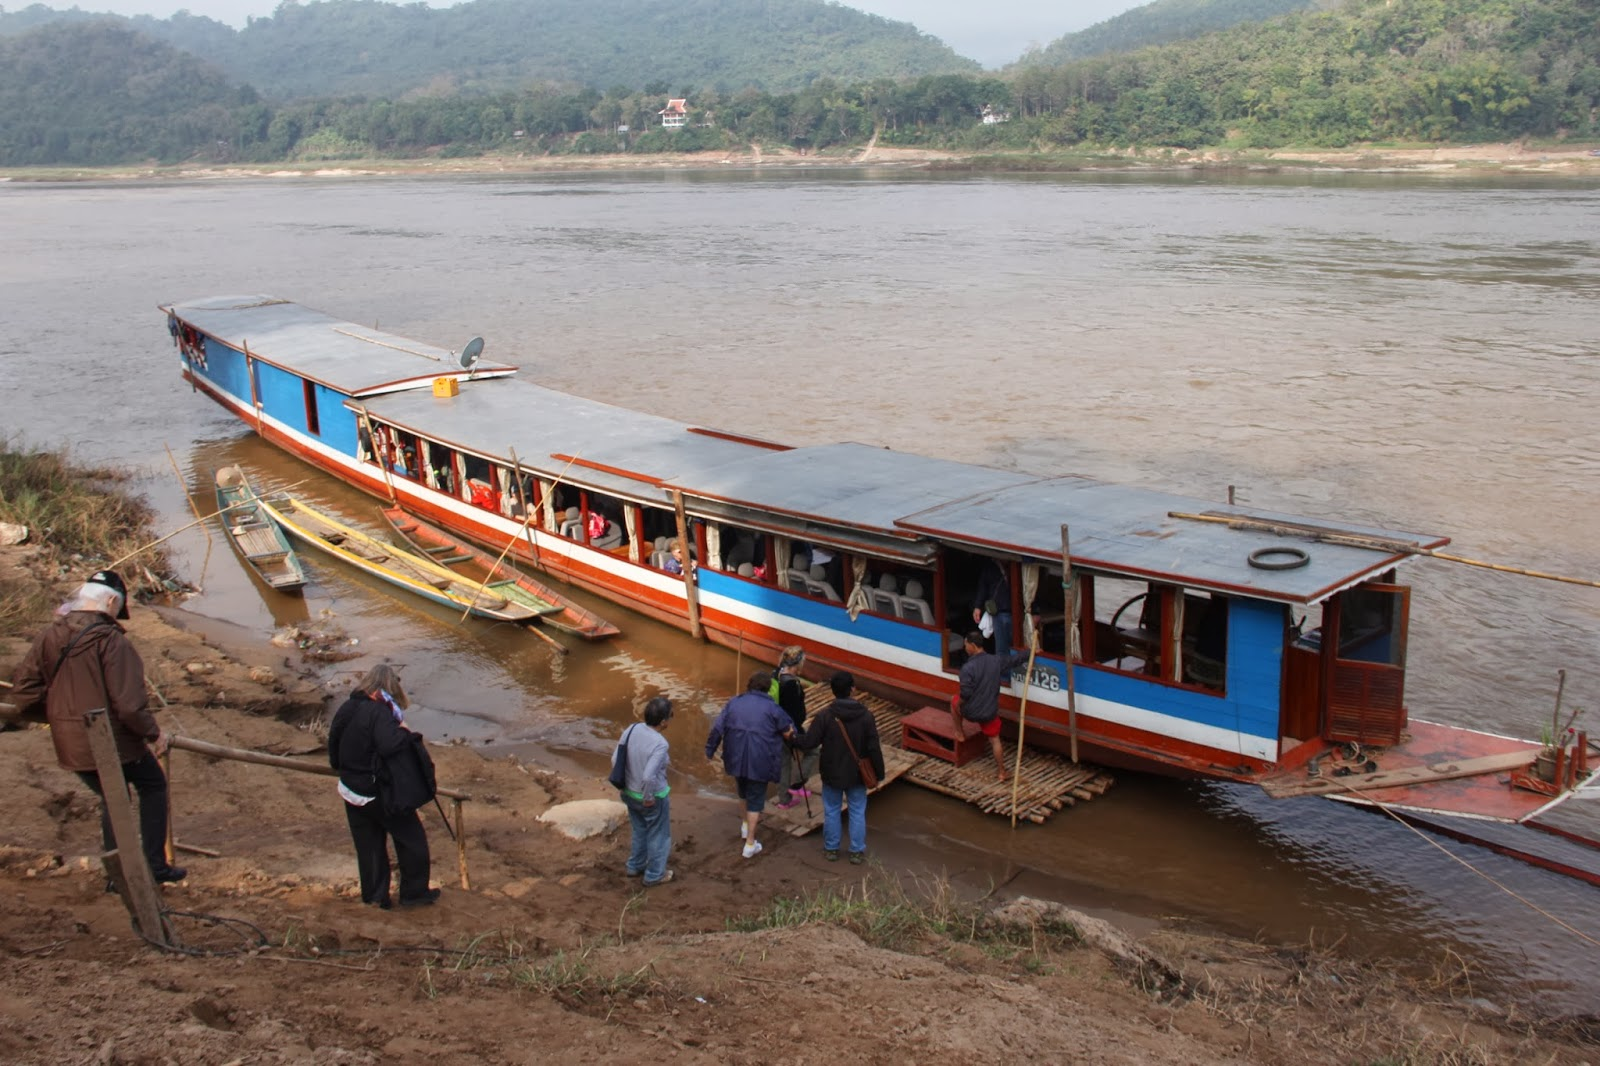 Boarding the motor boat for a ride up the Mekong River.